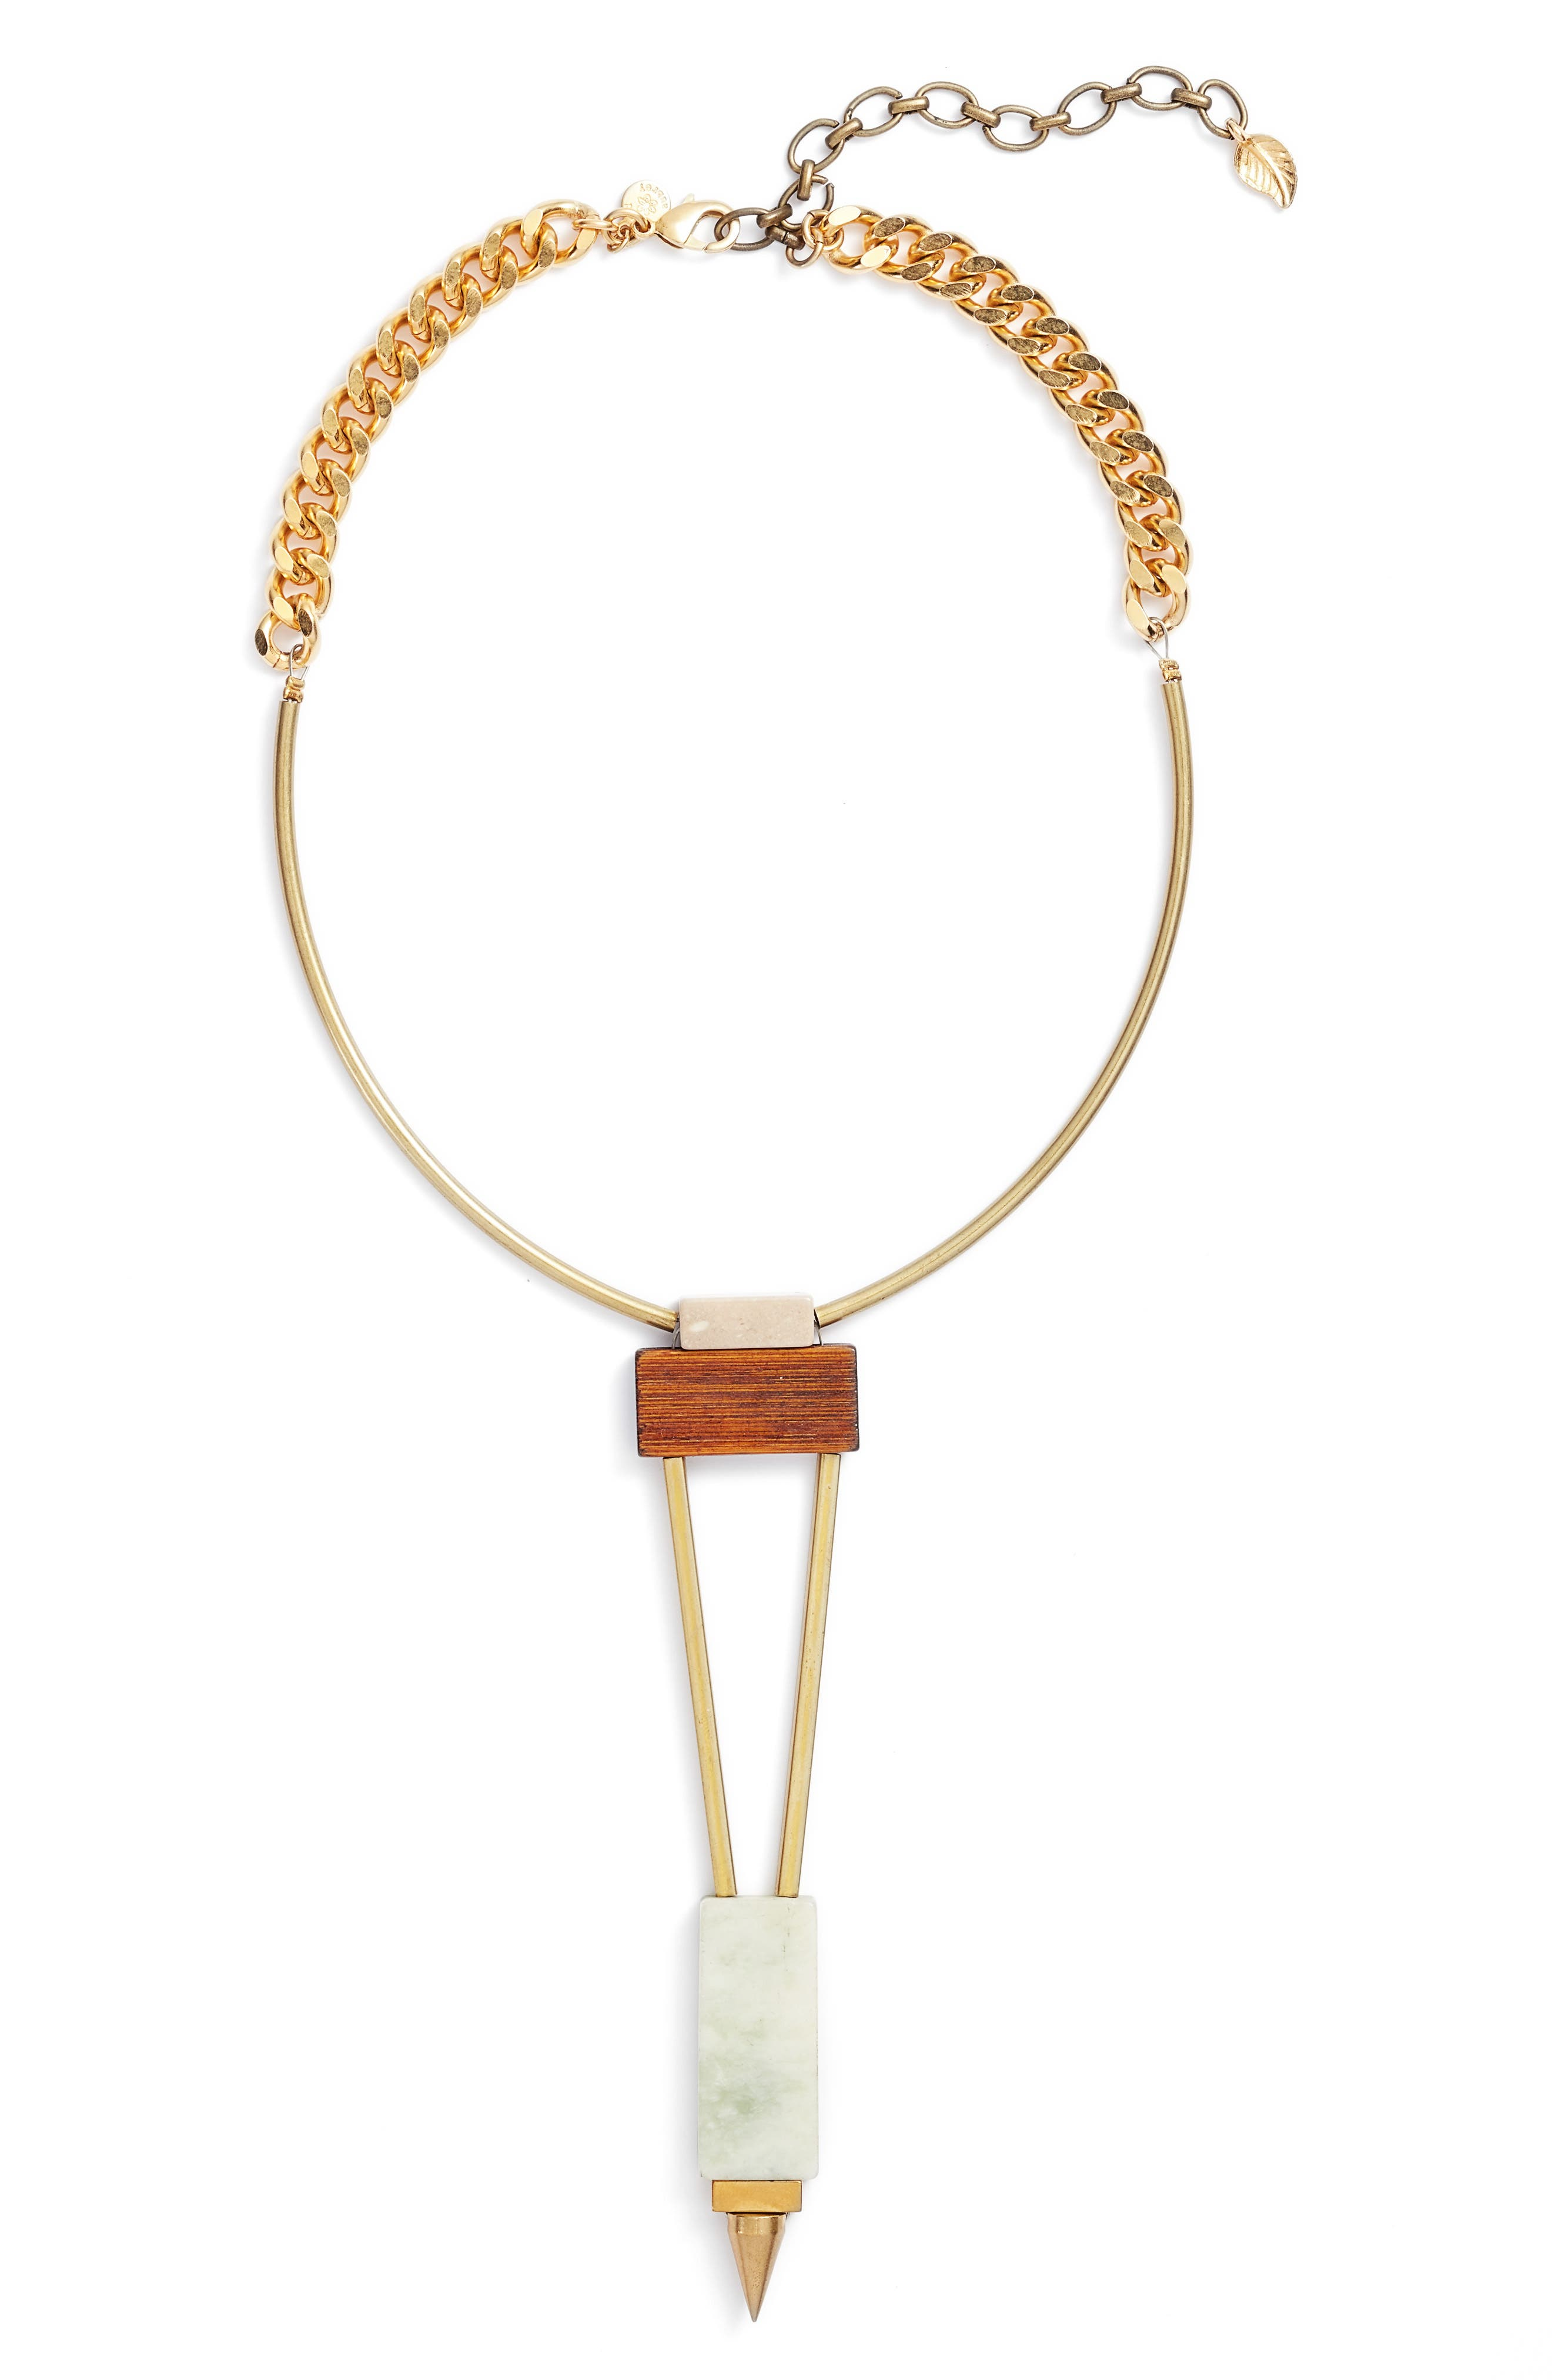 Odele Wood Statement Necklace,                             Main thumbnail 1, color,                             300